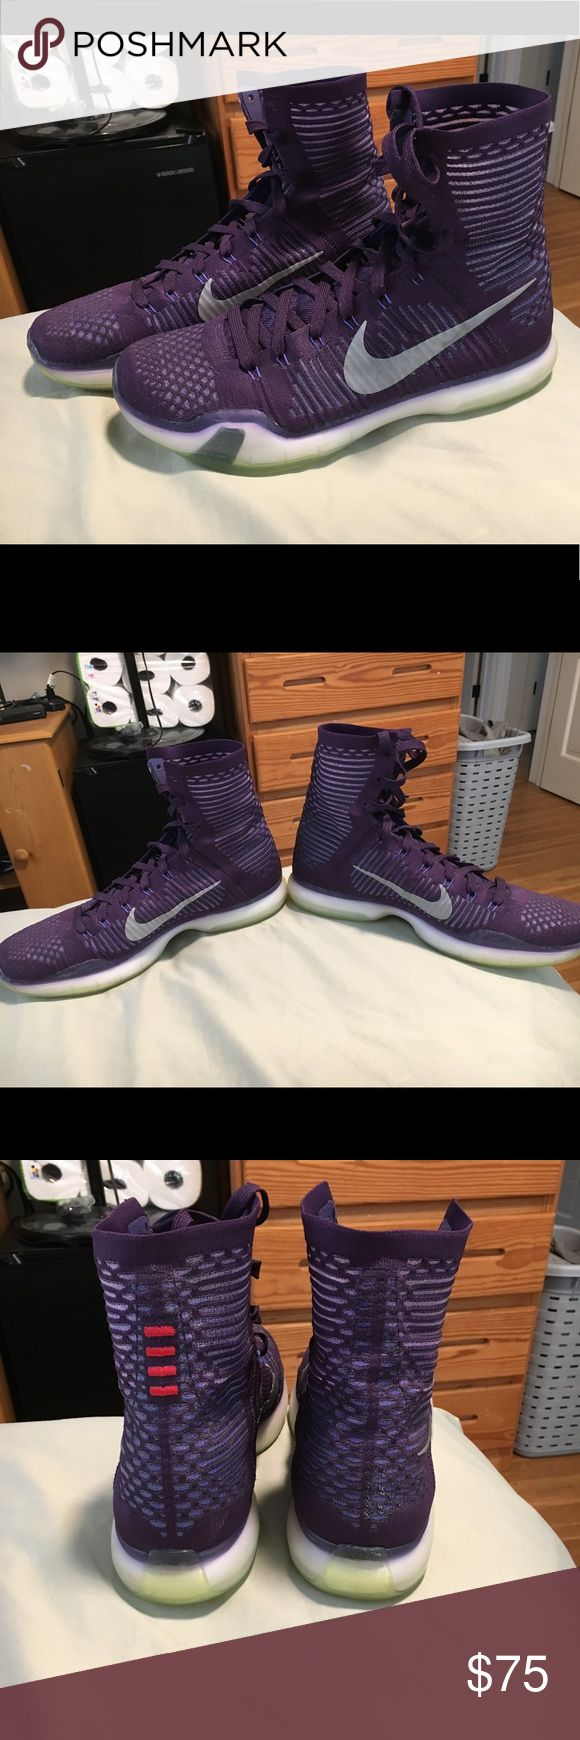 Nike Kobe 10 Elite Overall in excellent condition. No rips or tears. Worn only a few times. Size 12. Nike Shoes Athletic Shoes